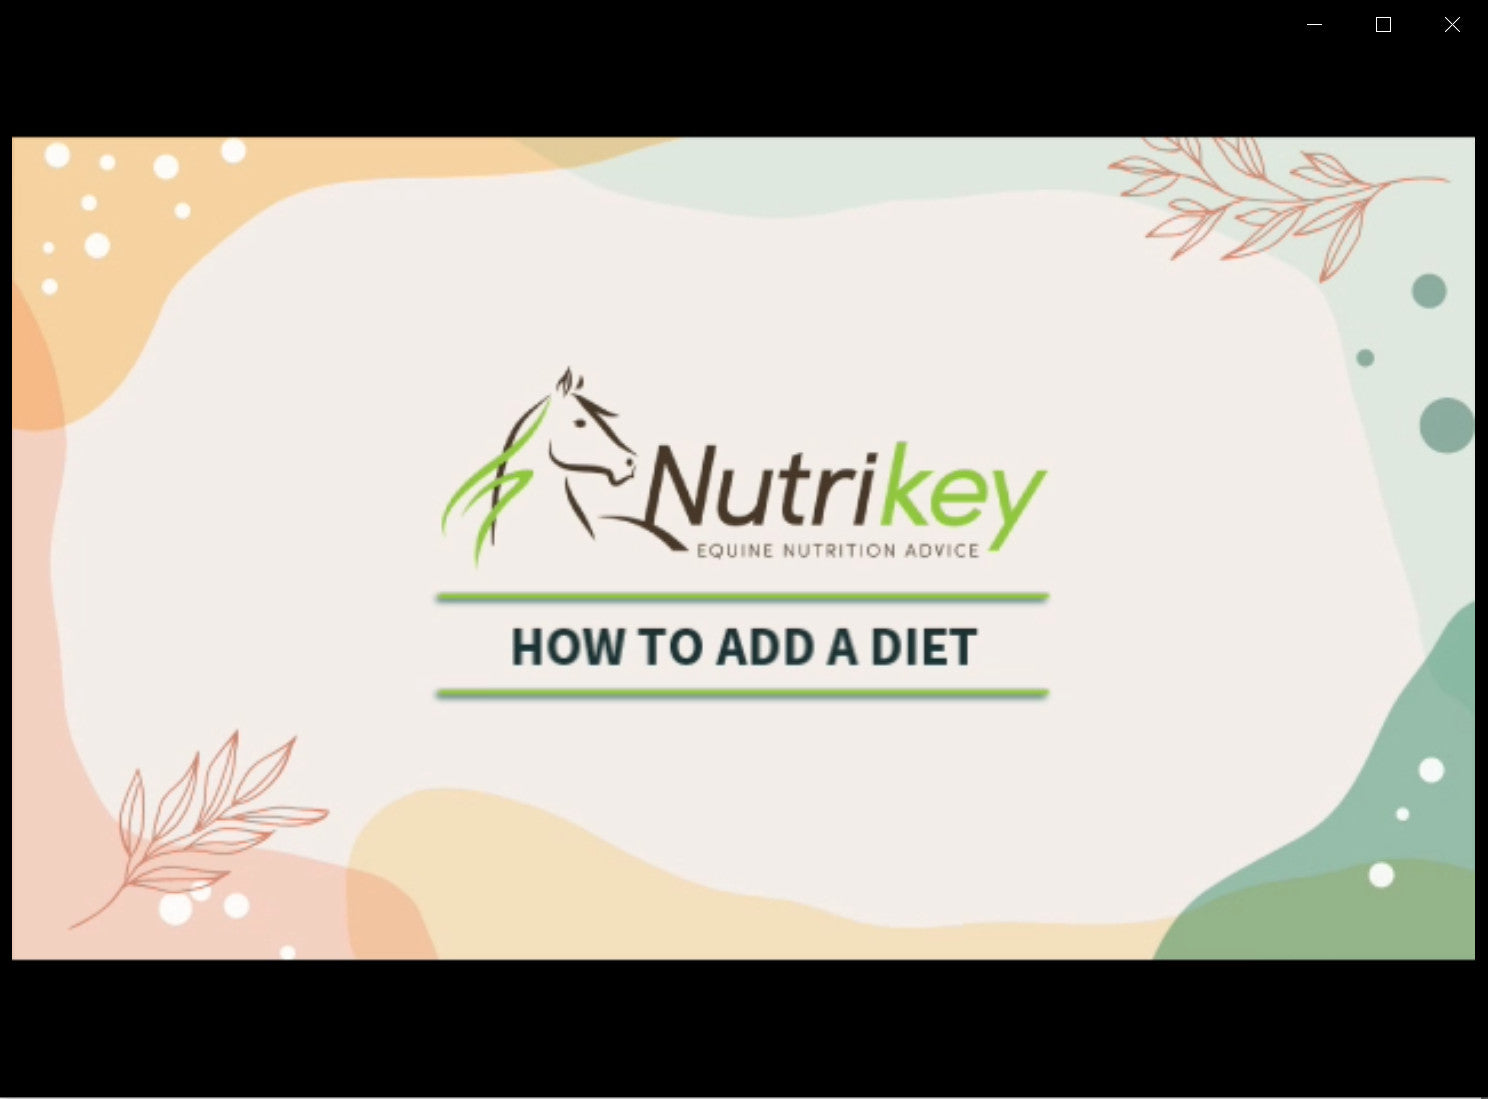 How to add a diet